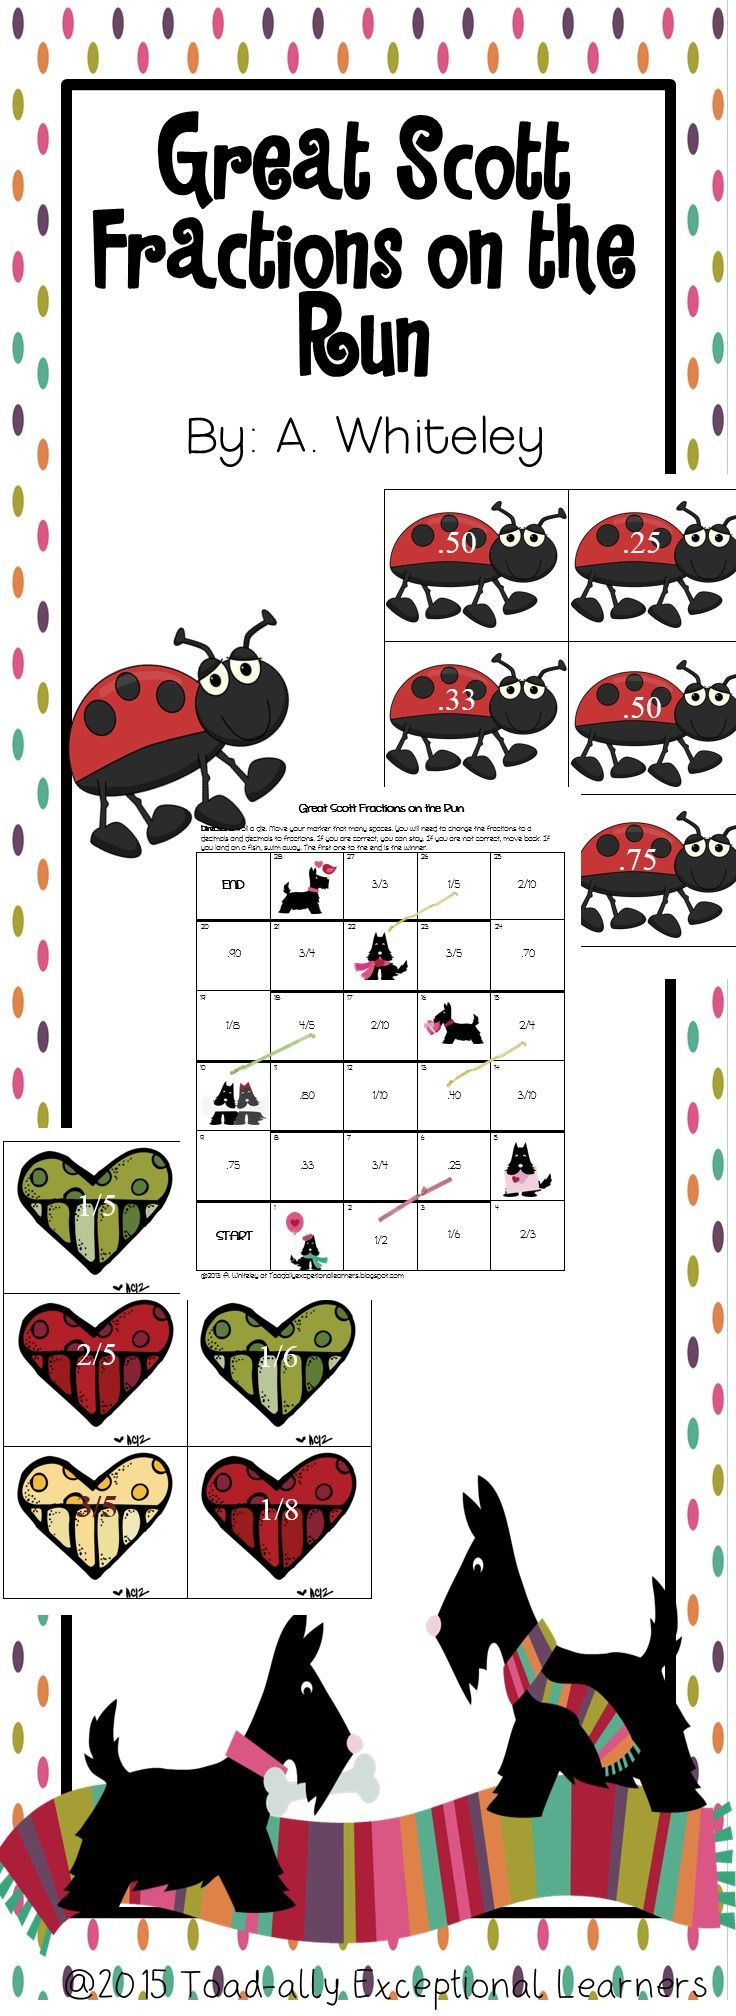 This is a fun way to practice Fractions and Decimals The packet contains 2 two games to help students move between fractions and decimals fluently. With these games students can practice with fractions halves, thirds, fourths, fifths, one-sixth, and one-eighth in small group, partner work, or with parents. This is great for 3rd and up.